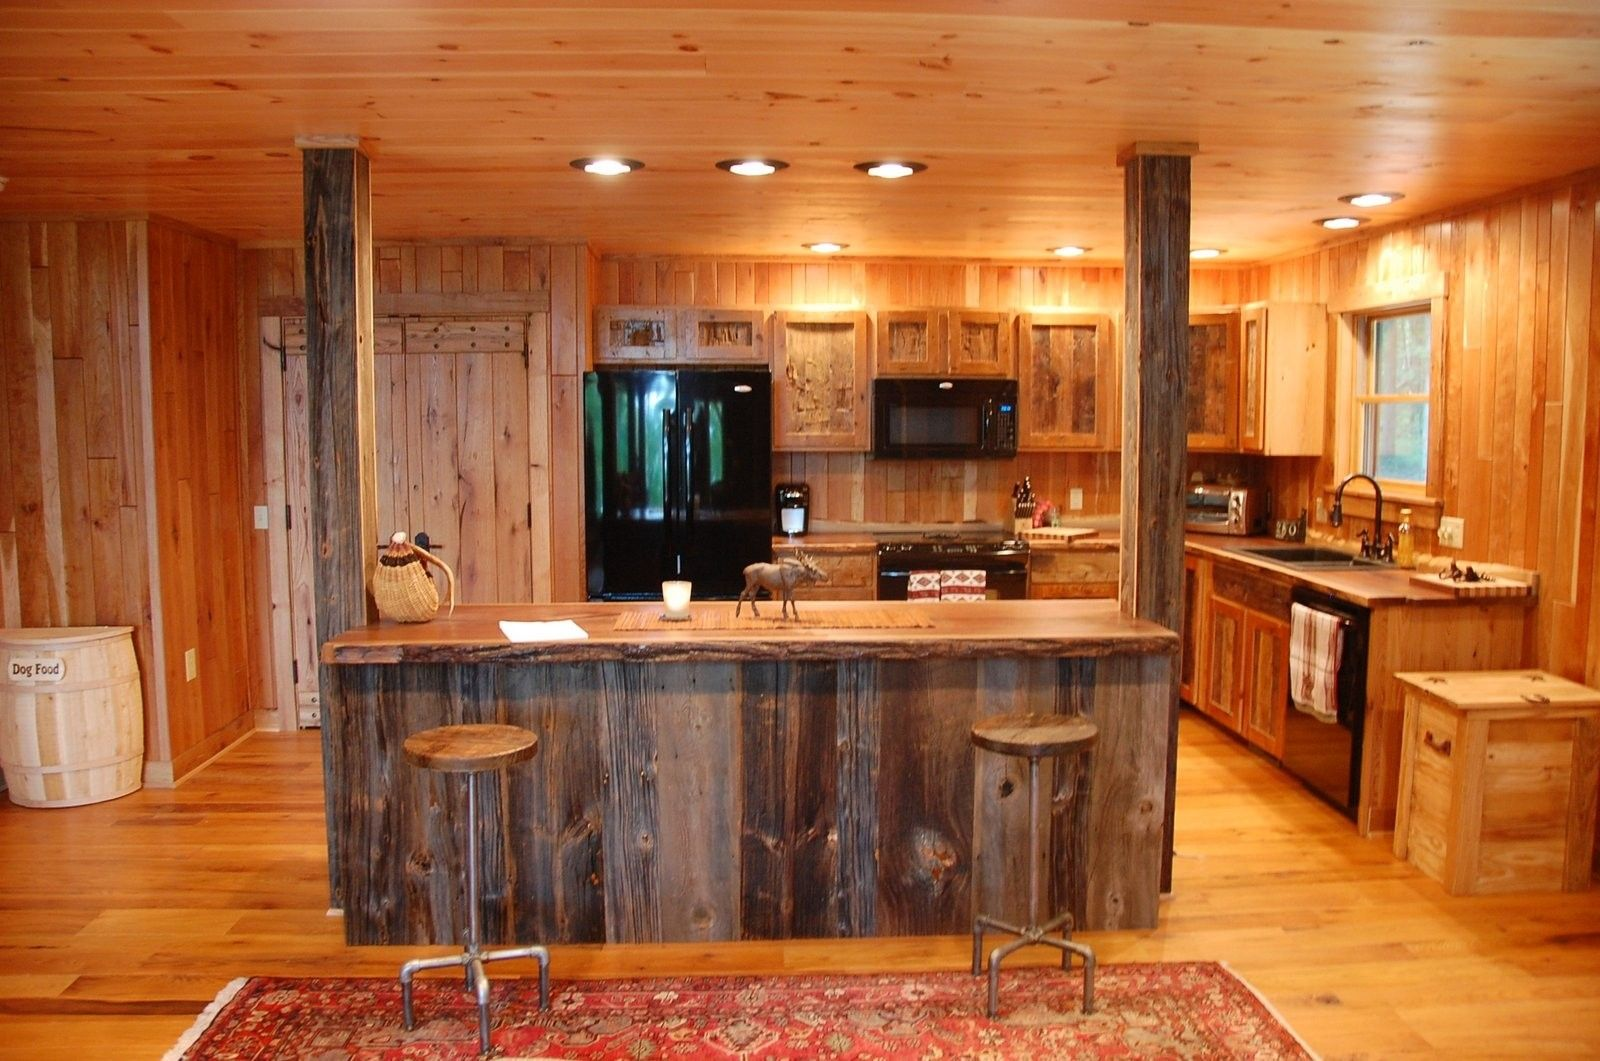 Custom made reclaimed wood rustic kitchen cabinets by for Country rustic kitchen ideas